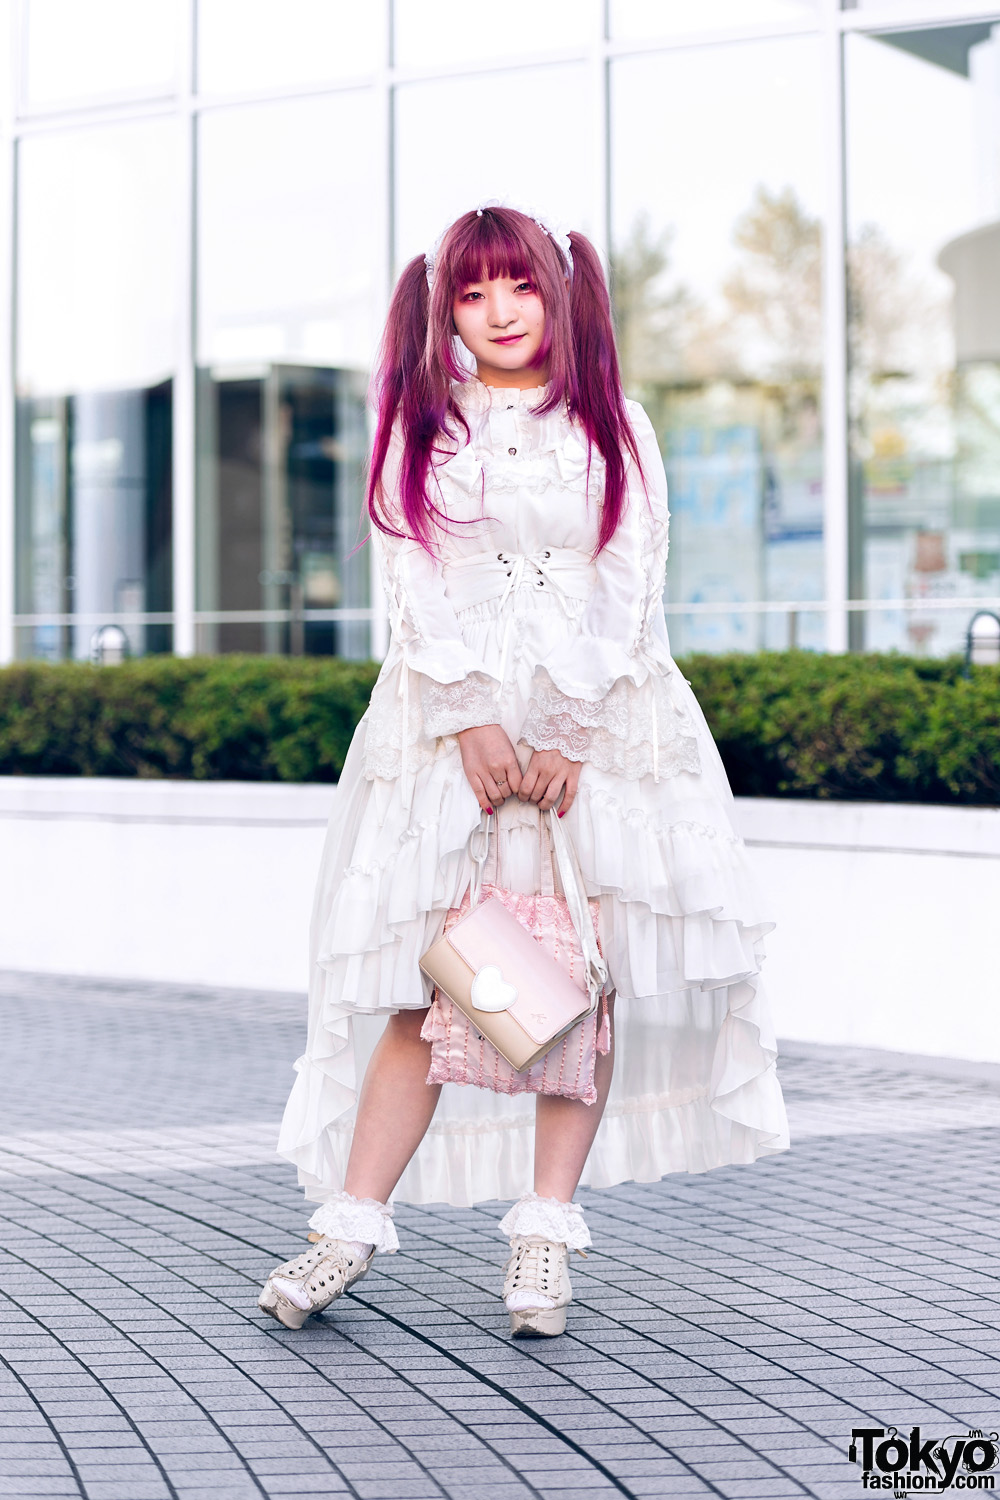 All White Fashion w/ Twin Pink Tails, Red Eye Makeup, Ruffle Headpiece, Atelier Pierrot, Metamorphose Temps De Fille, Pink Bags & Axes Femme Wedges